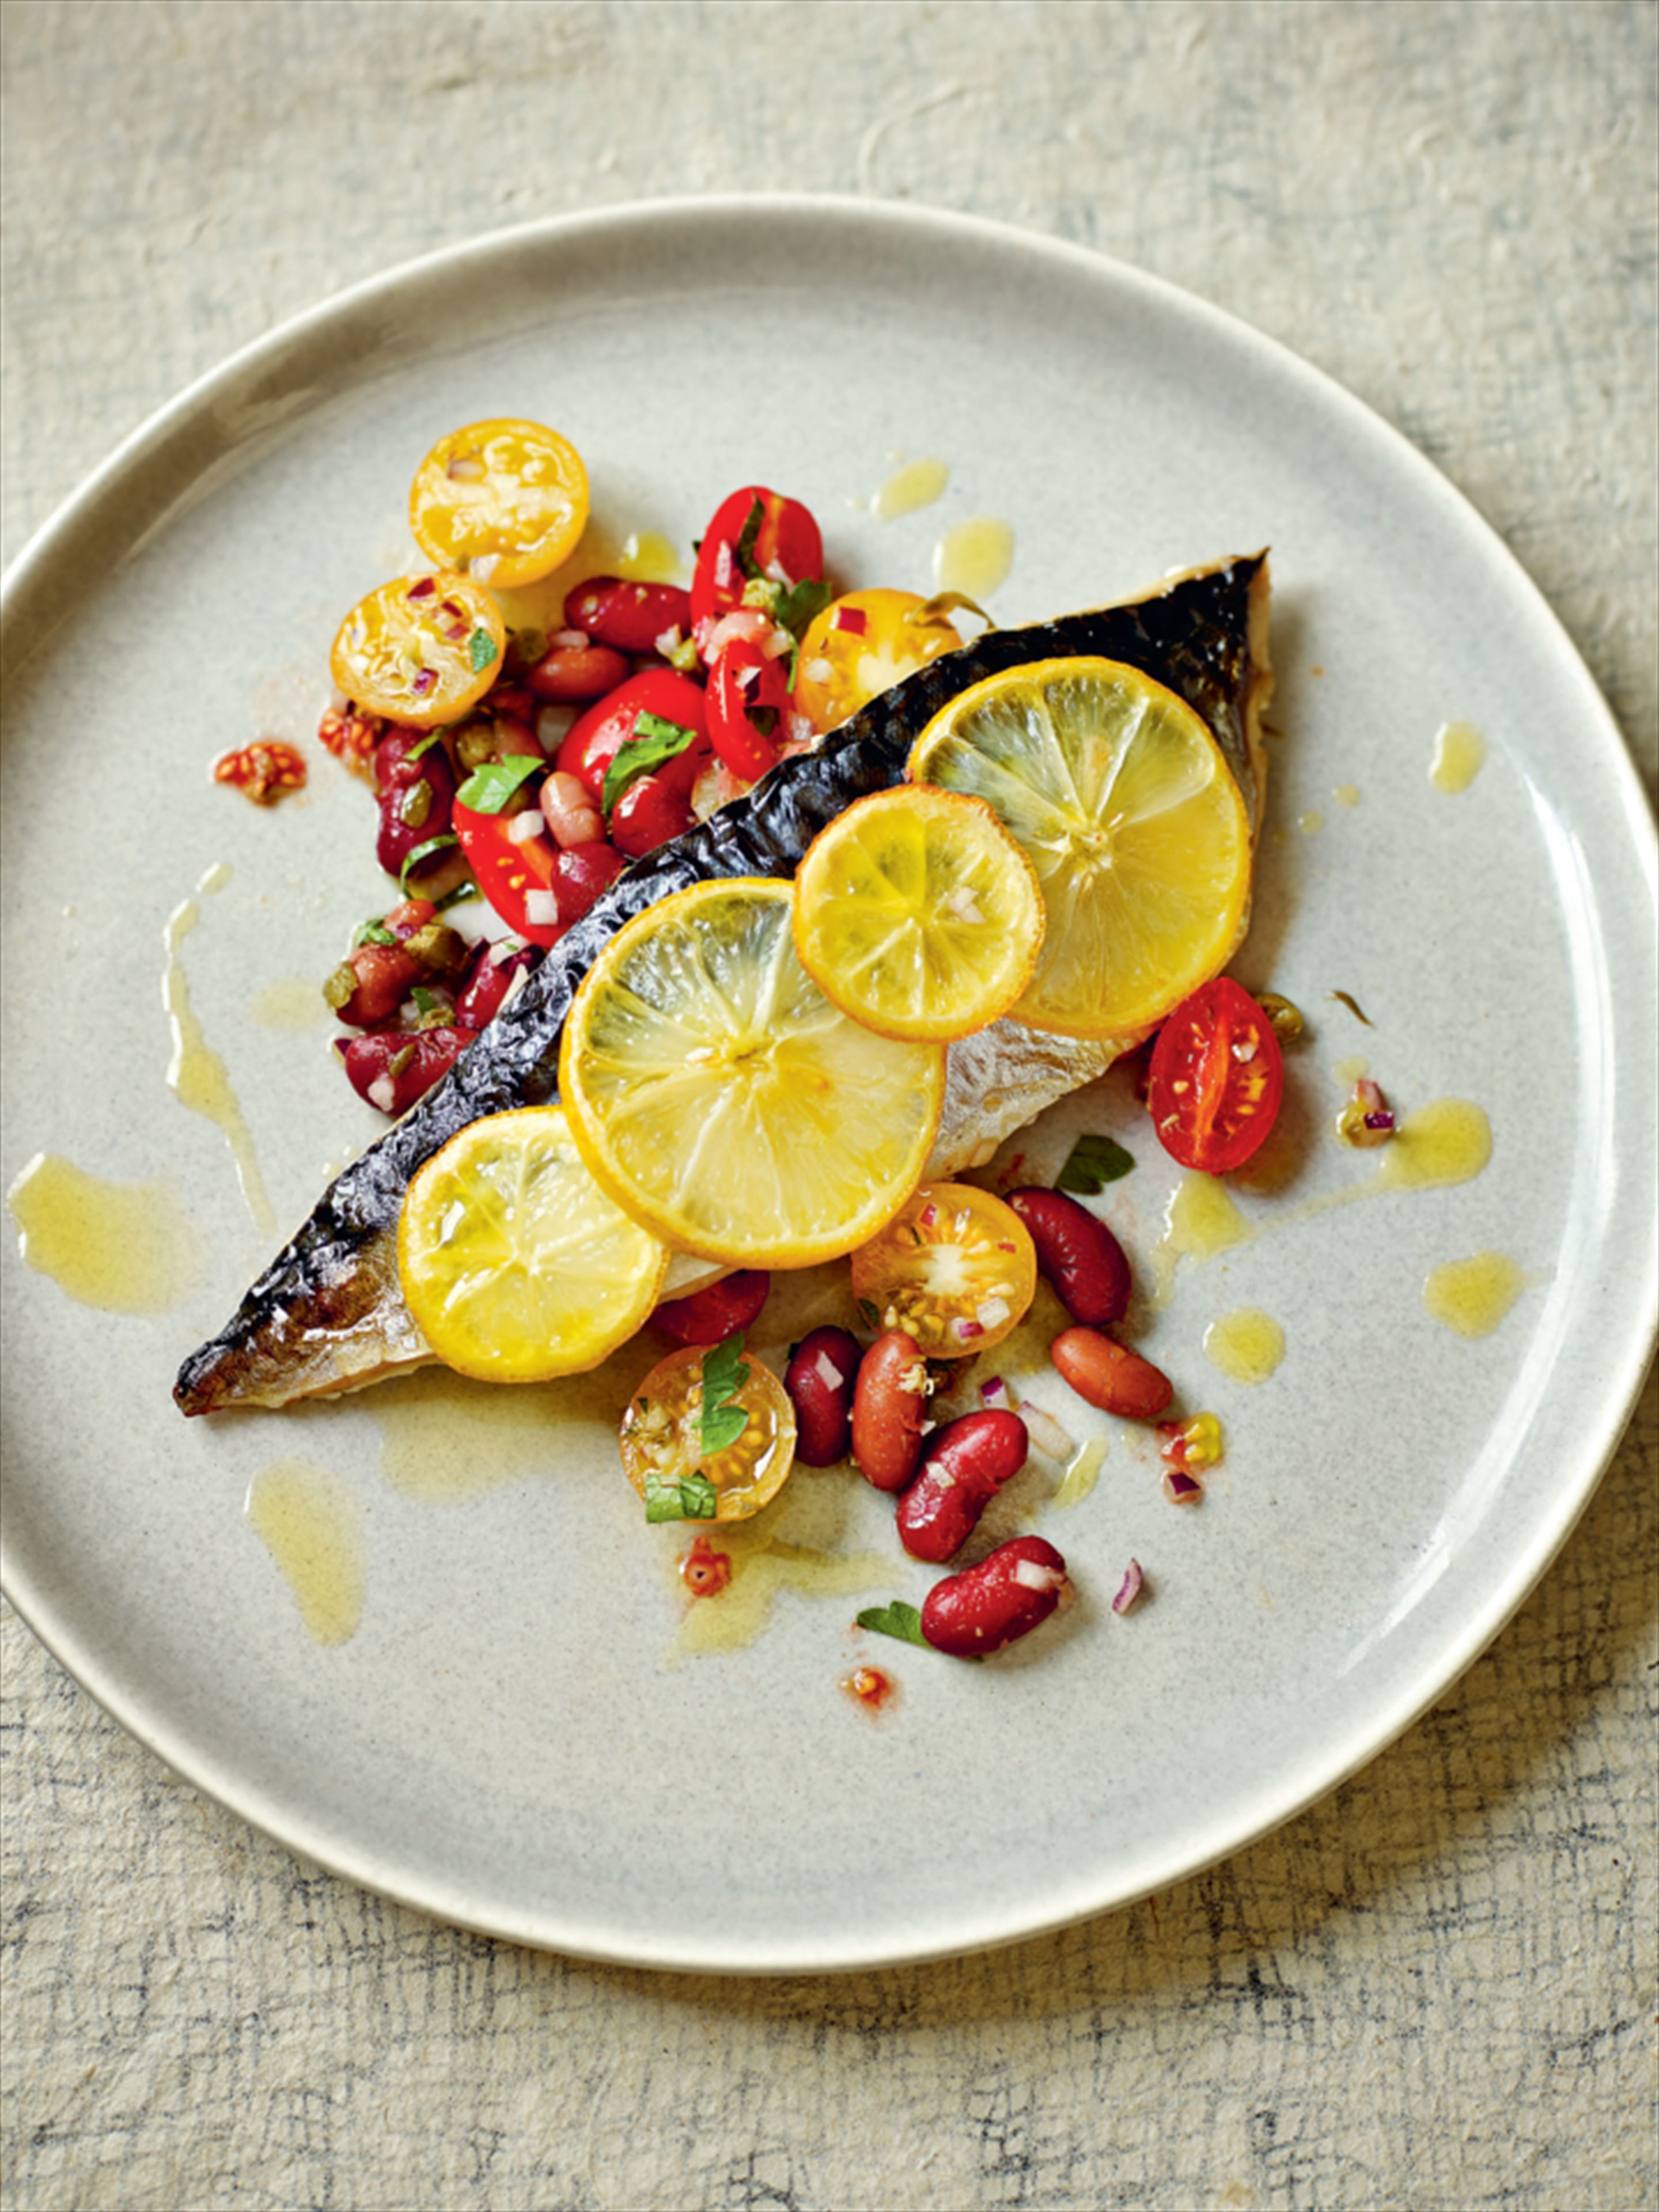 Mackerel with herbed mixed bean salad